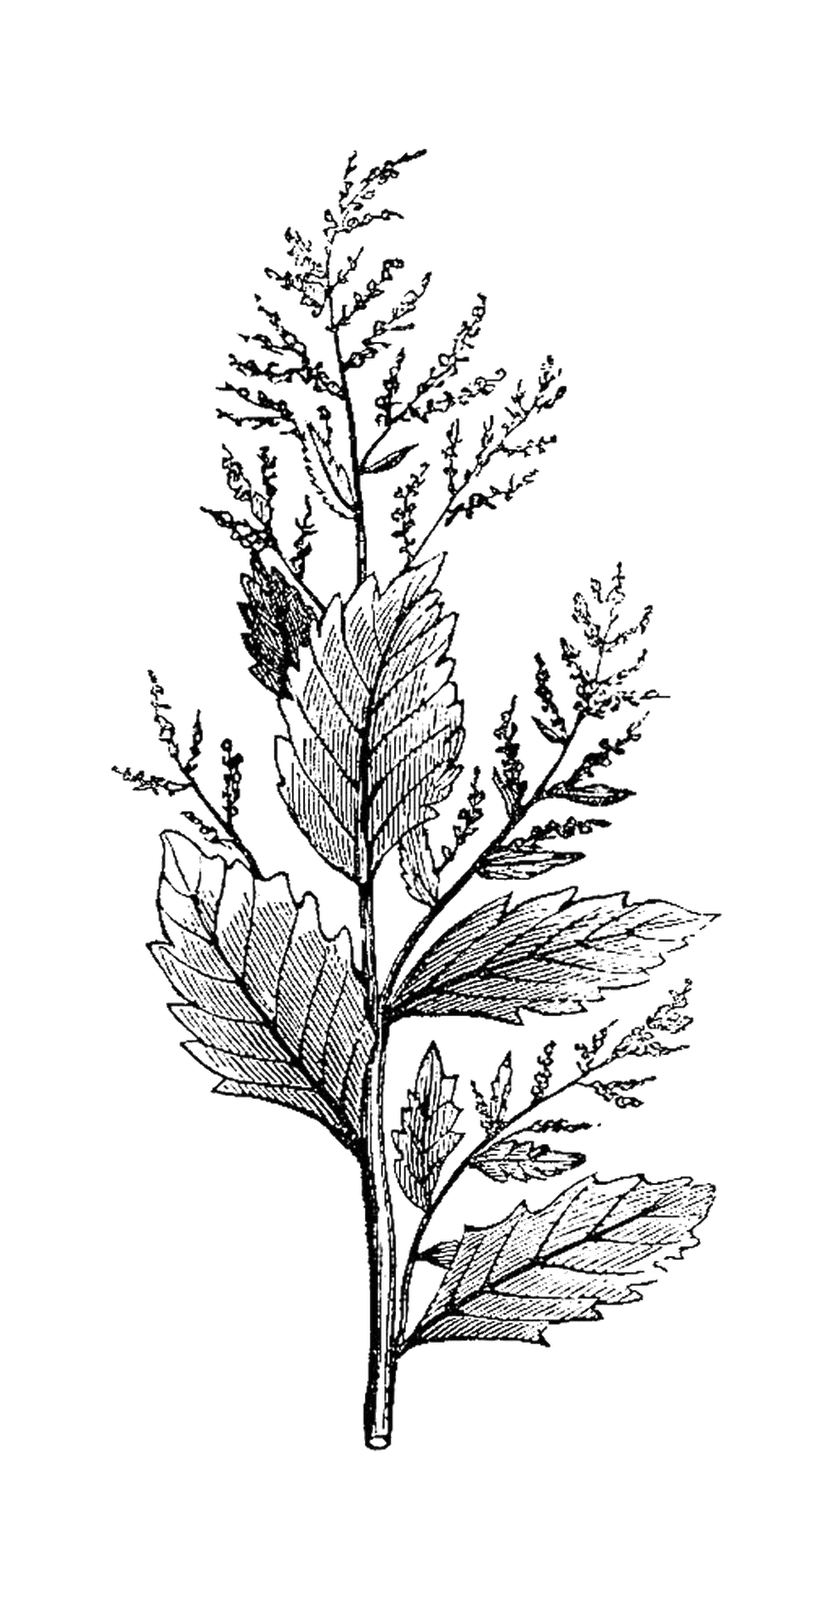 botanical drawings black and white Google Search